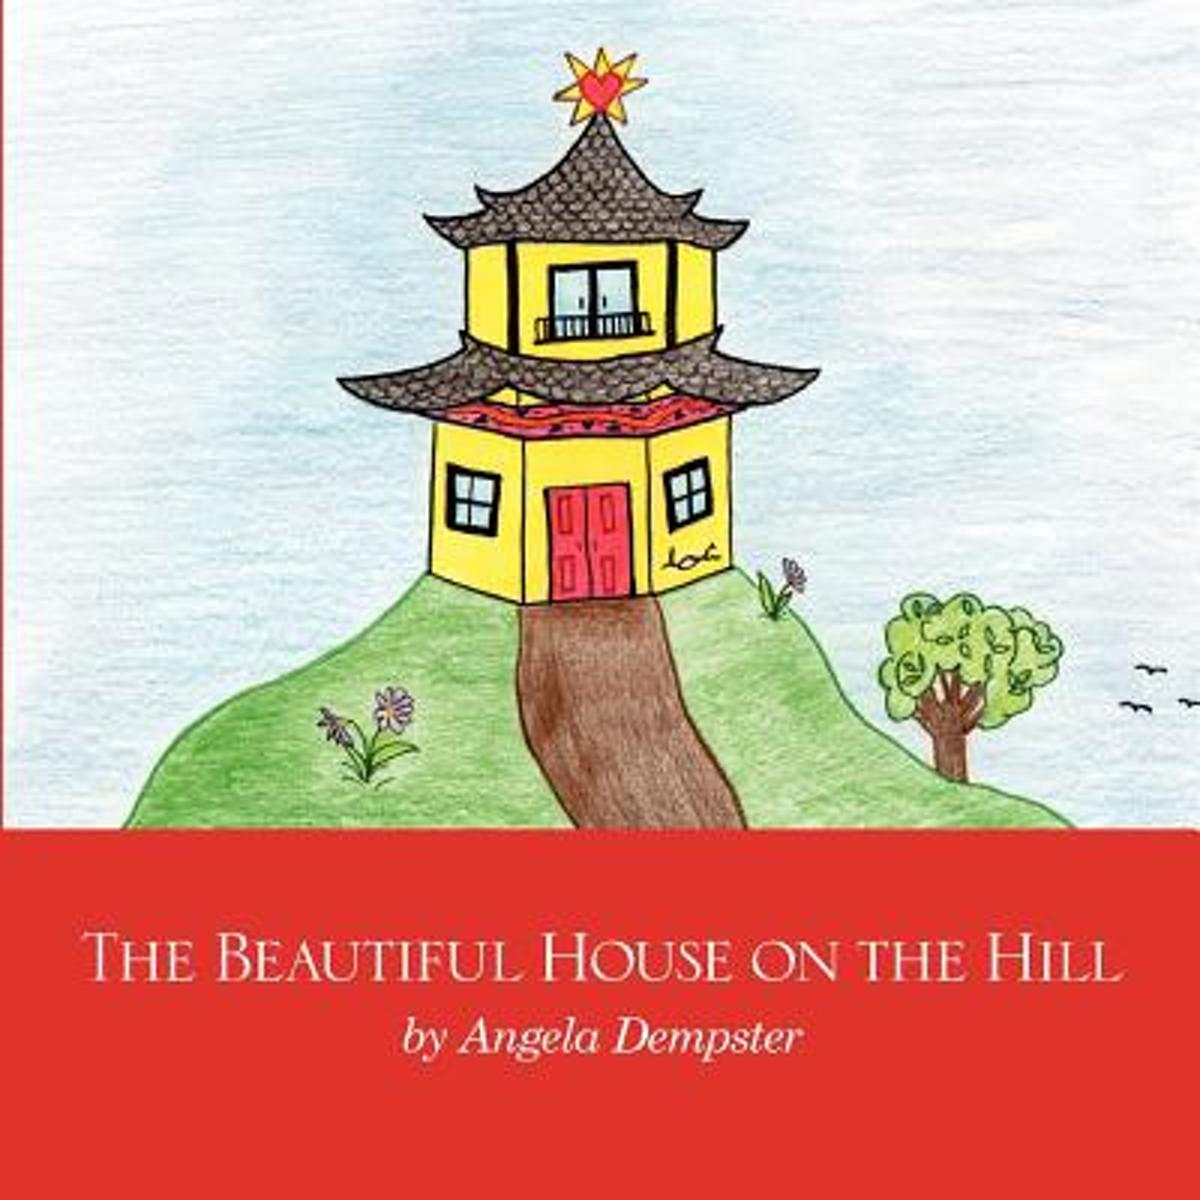 The Beautiful House on the Hill